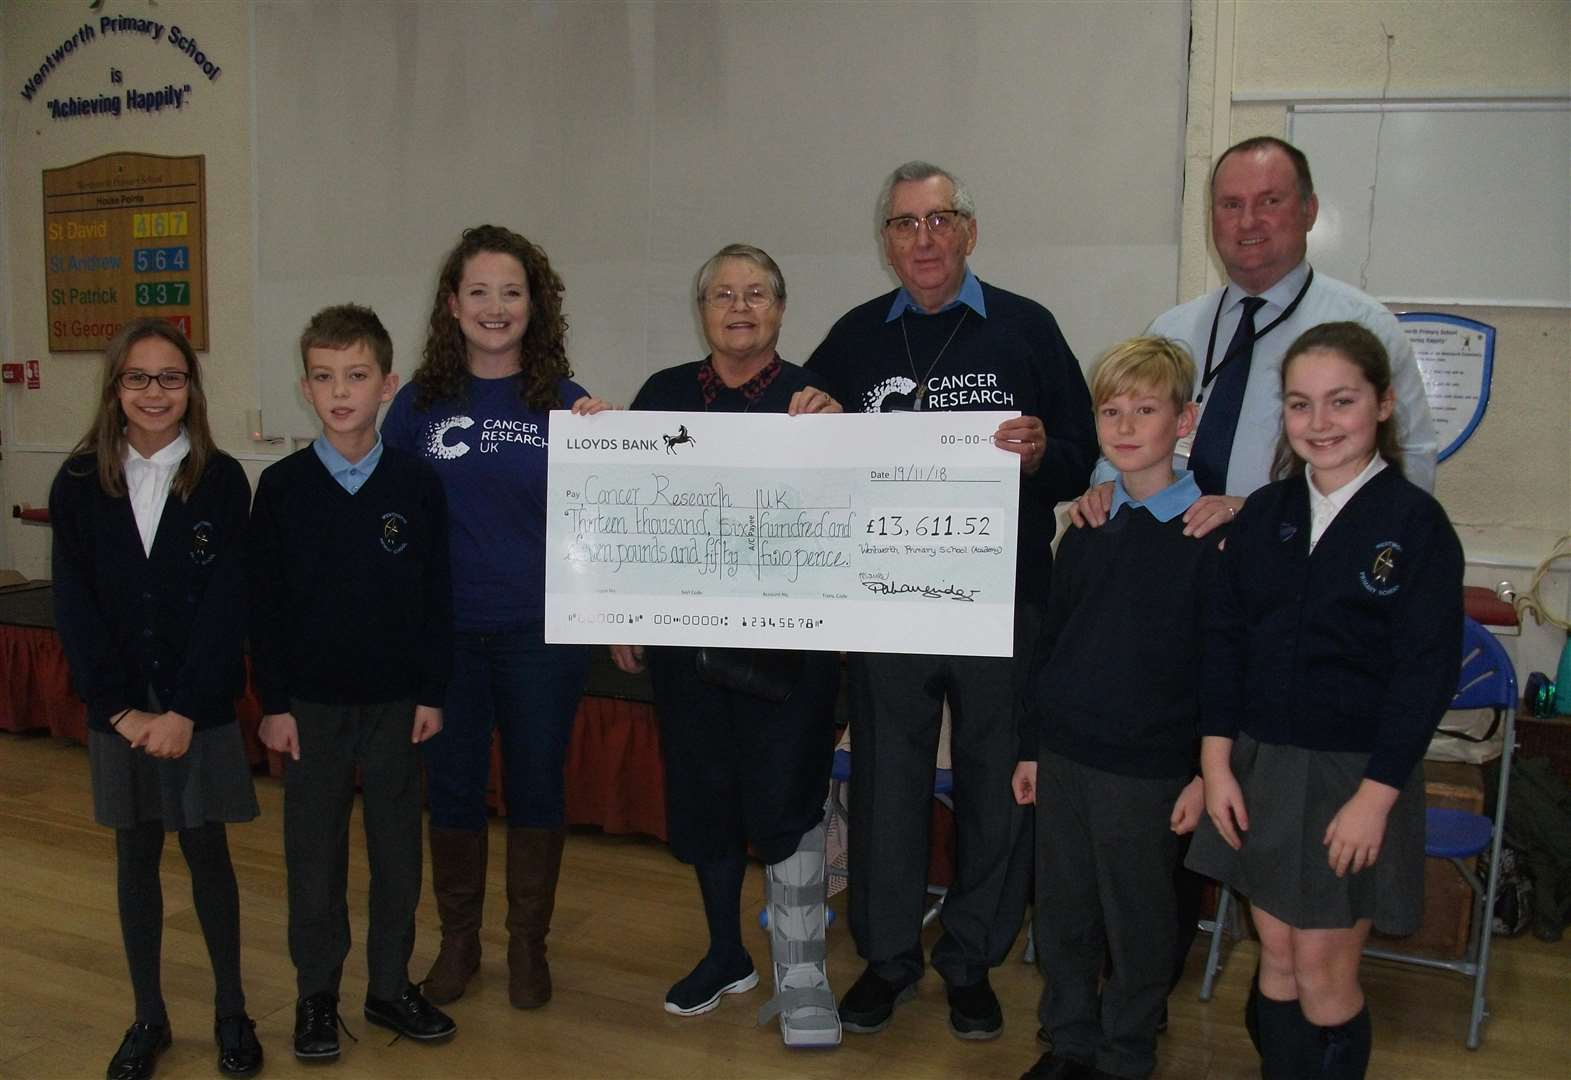 Pupils raise £13,000 for charity